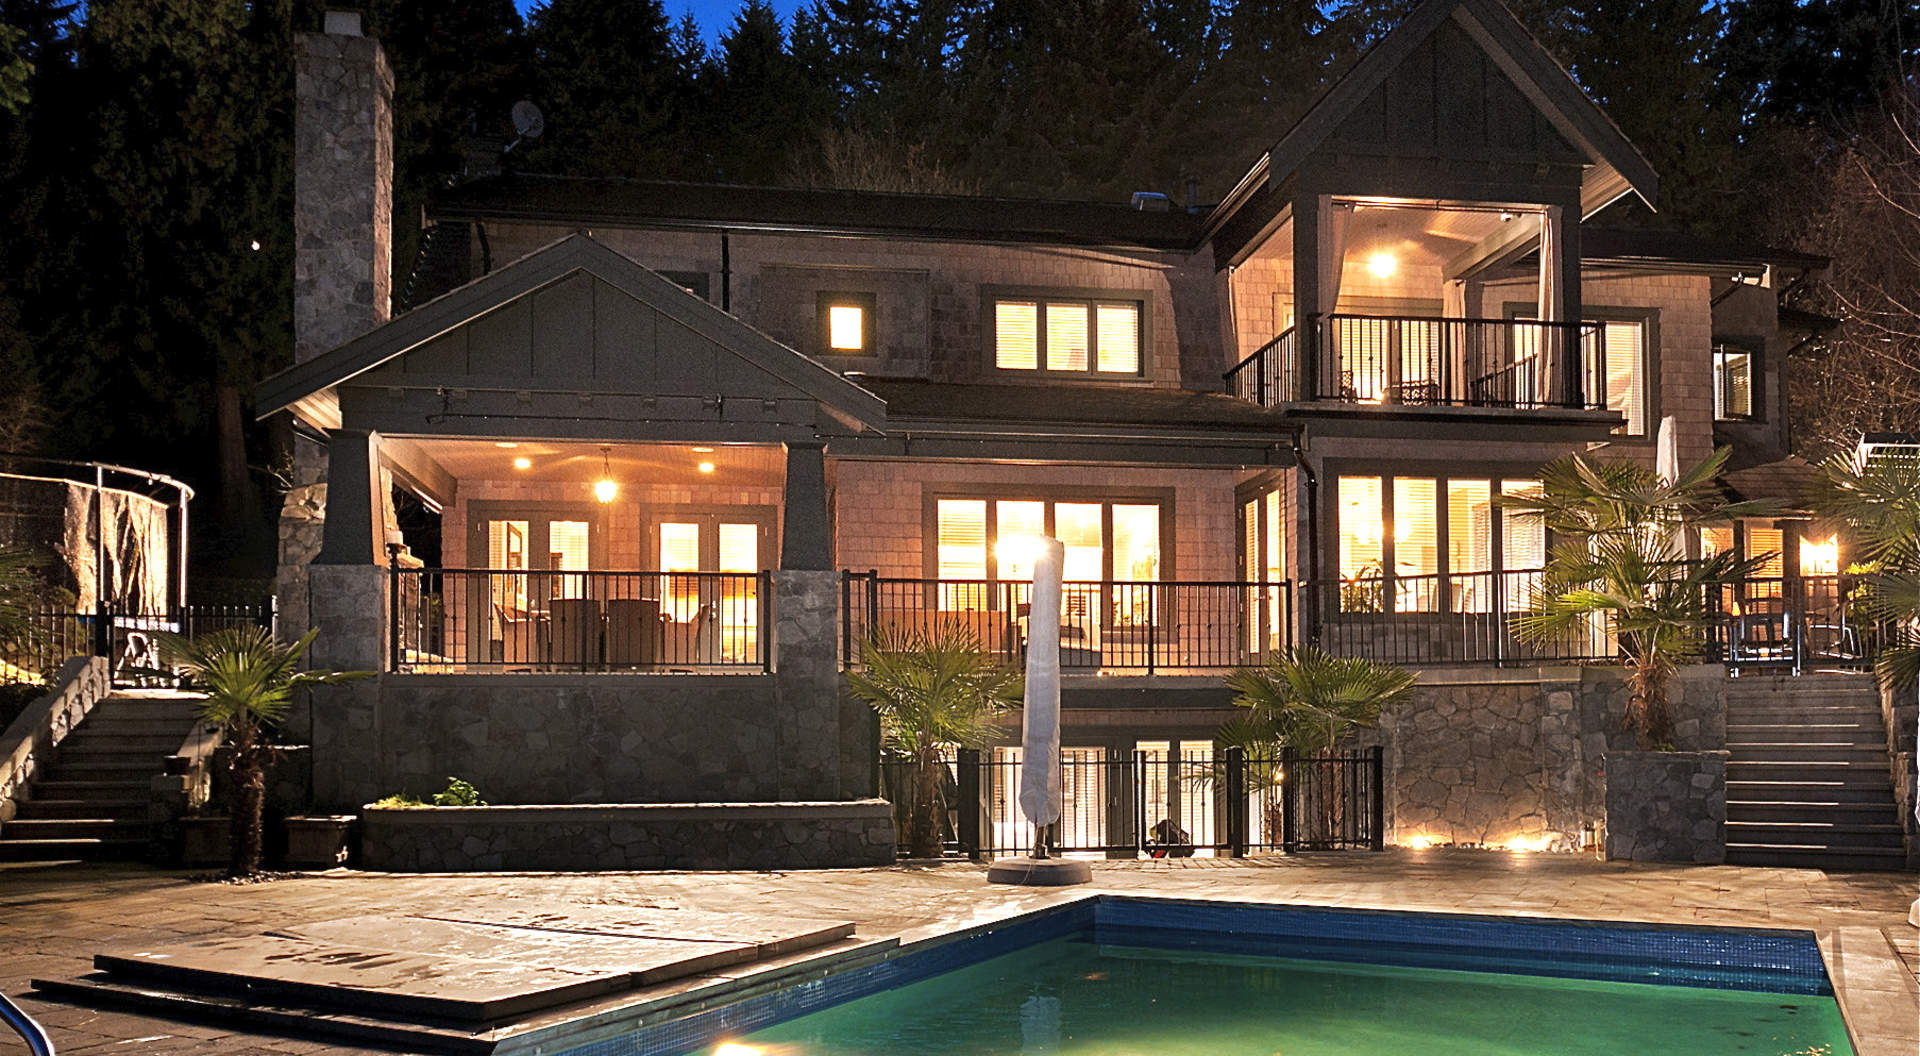 Back of Home with a Beautiful Pool